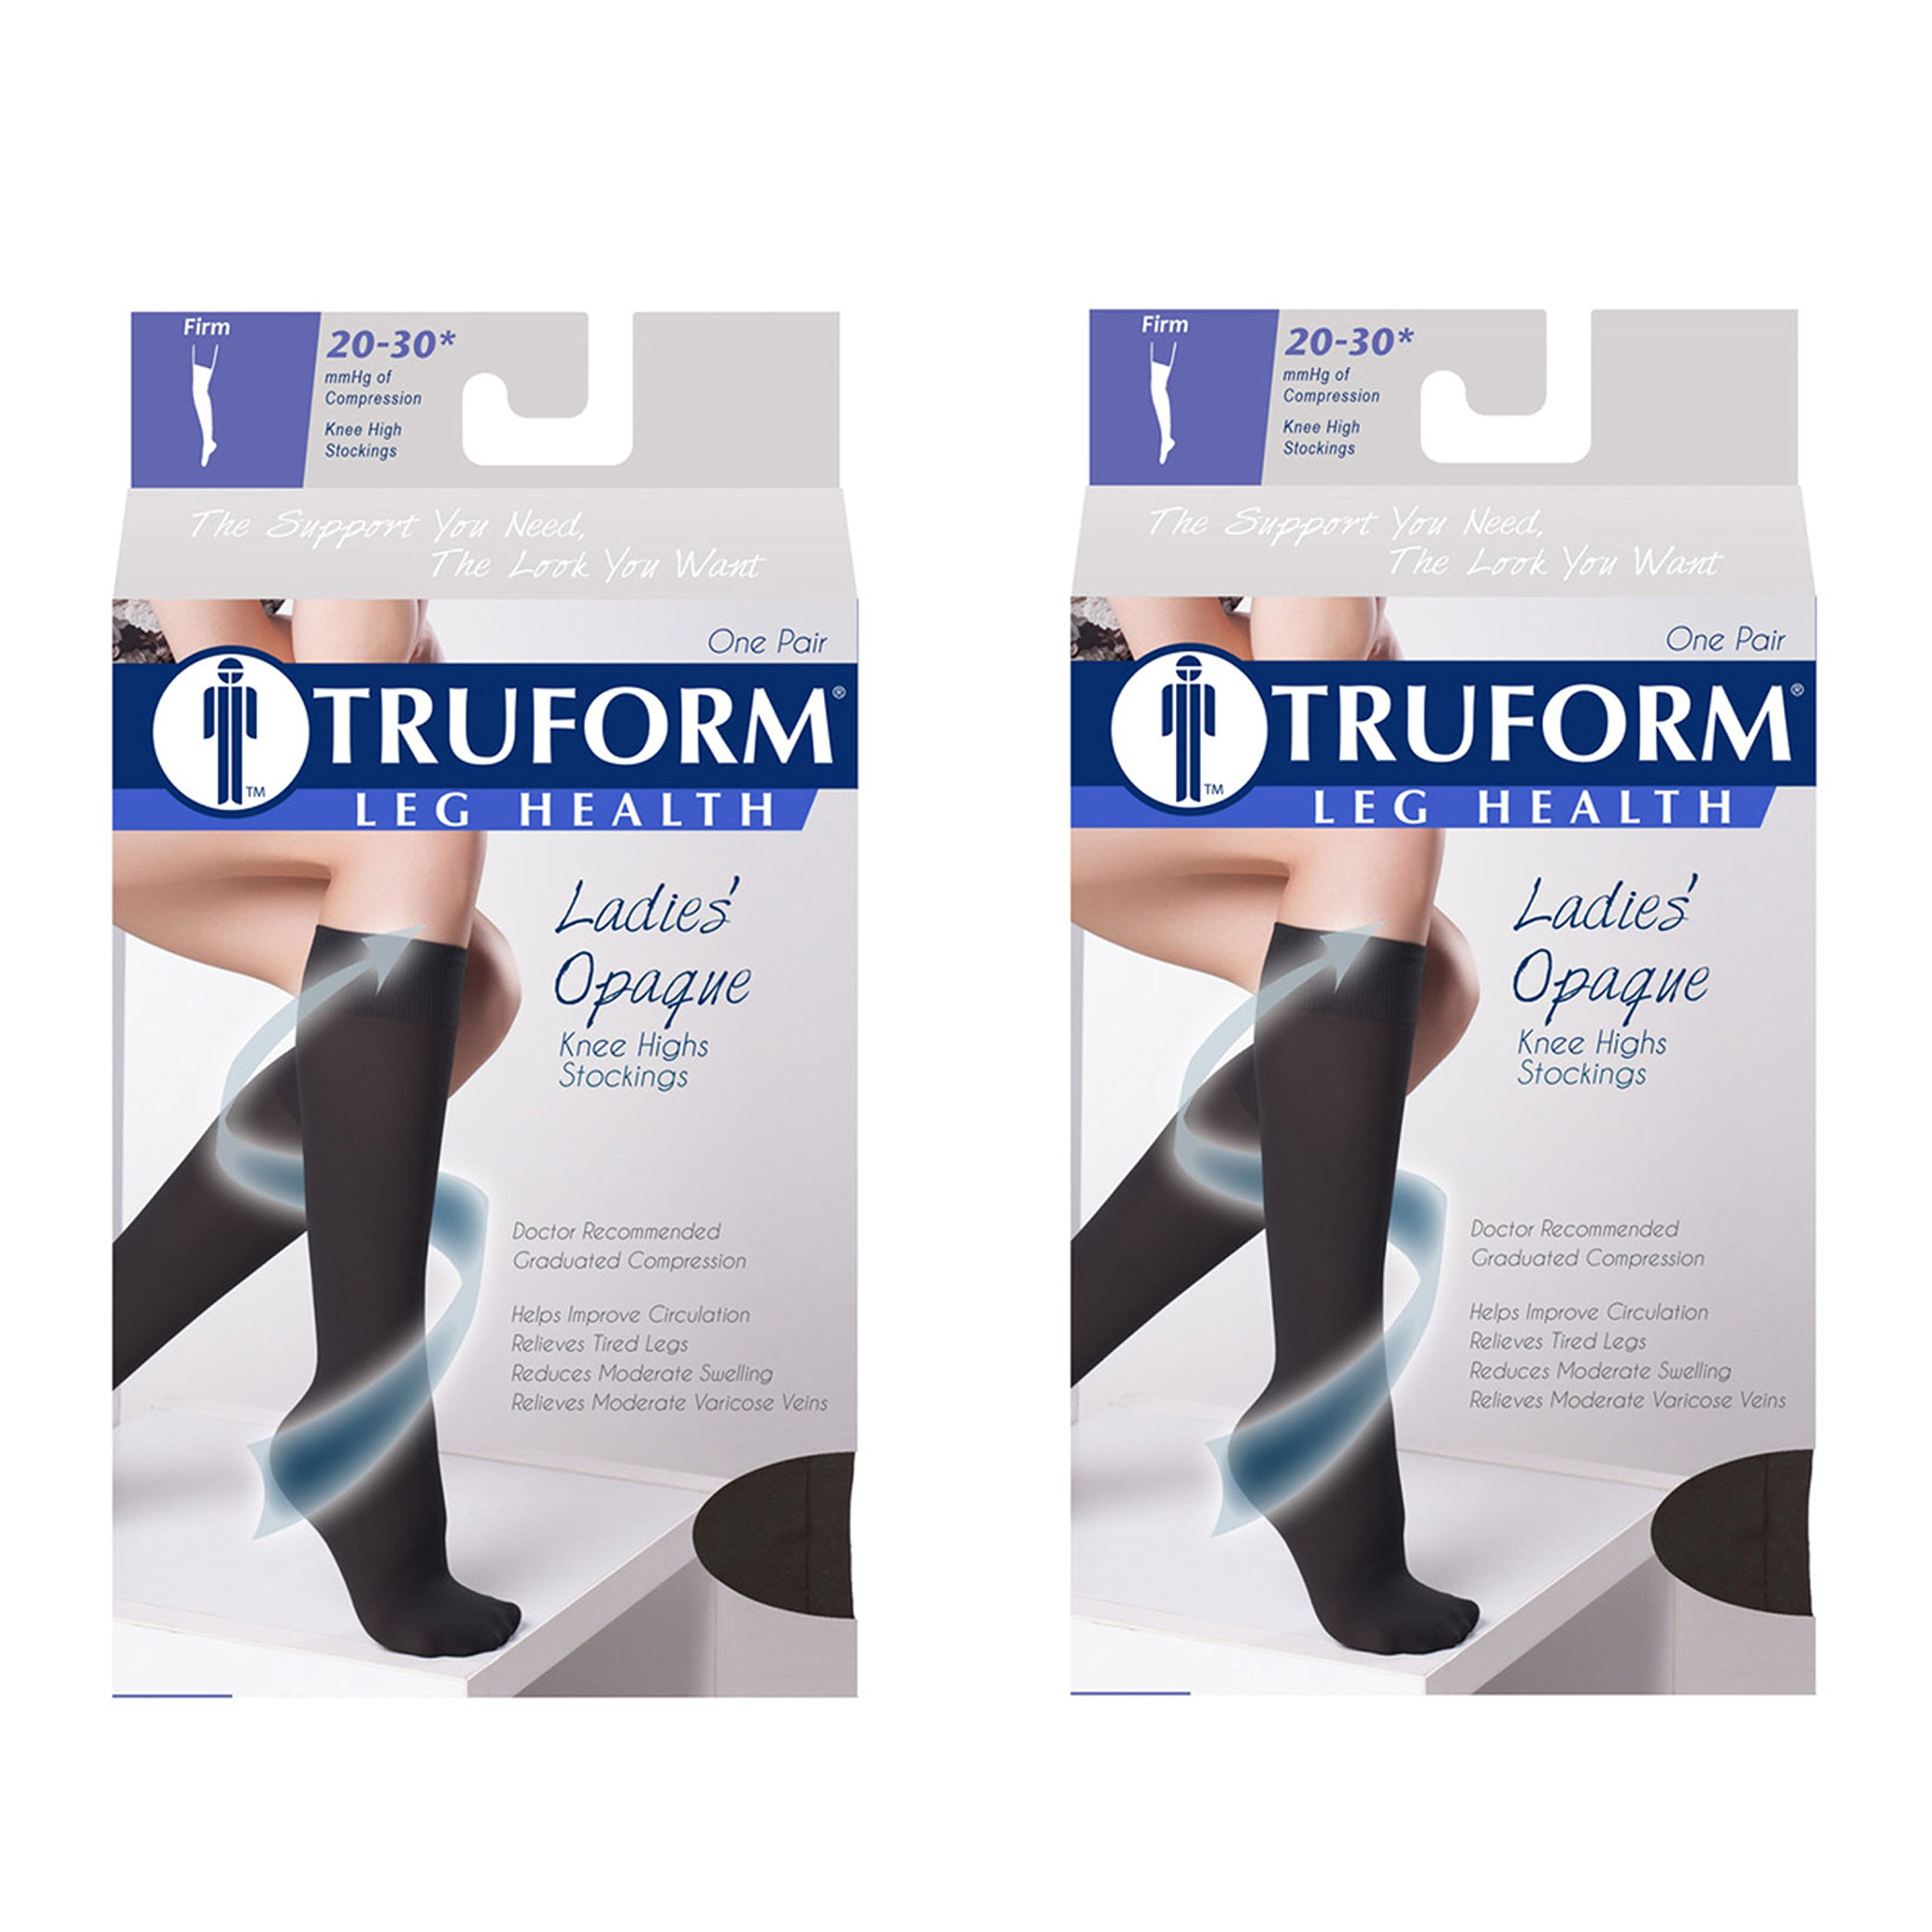 Truform Women's Compression 20-30 mmHg Knee High Open Toe Stockings Black, X-Large, 2 Count by Truform (Image #1)